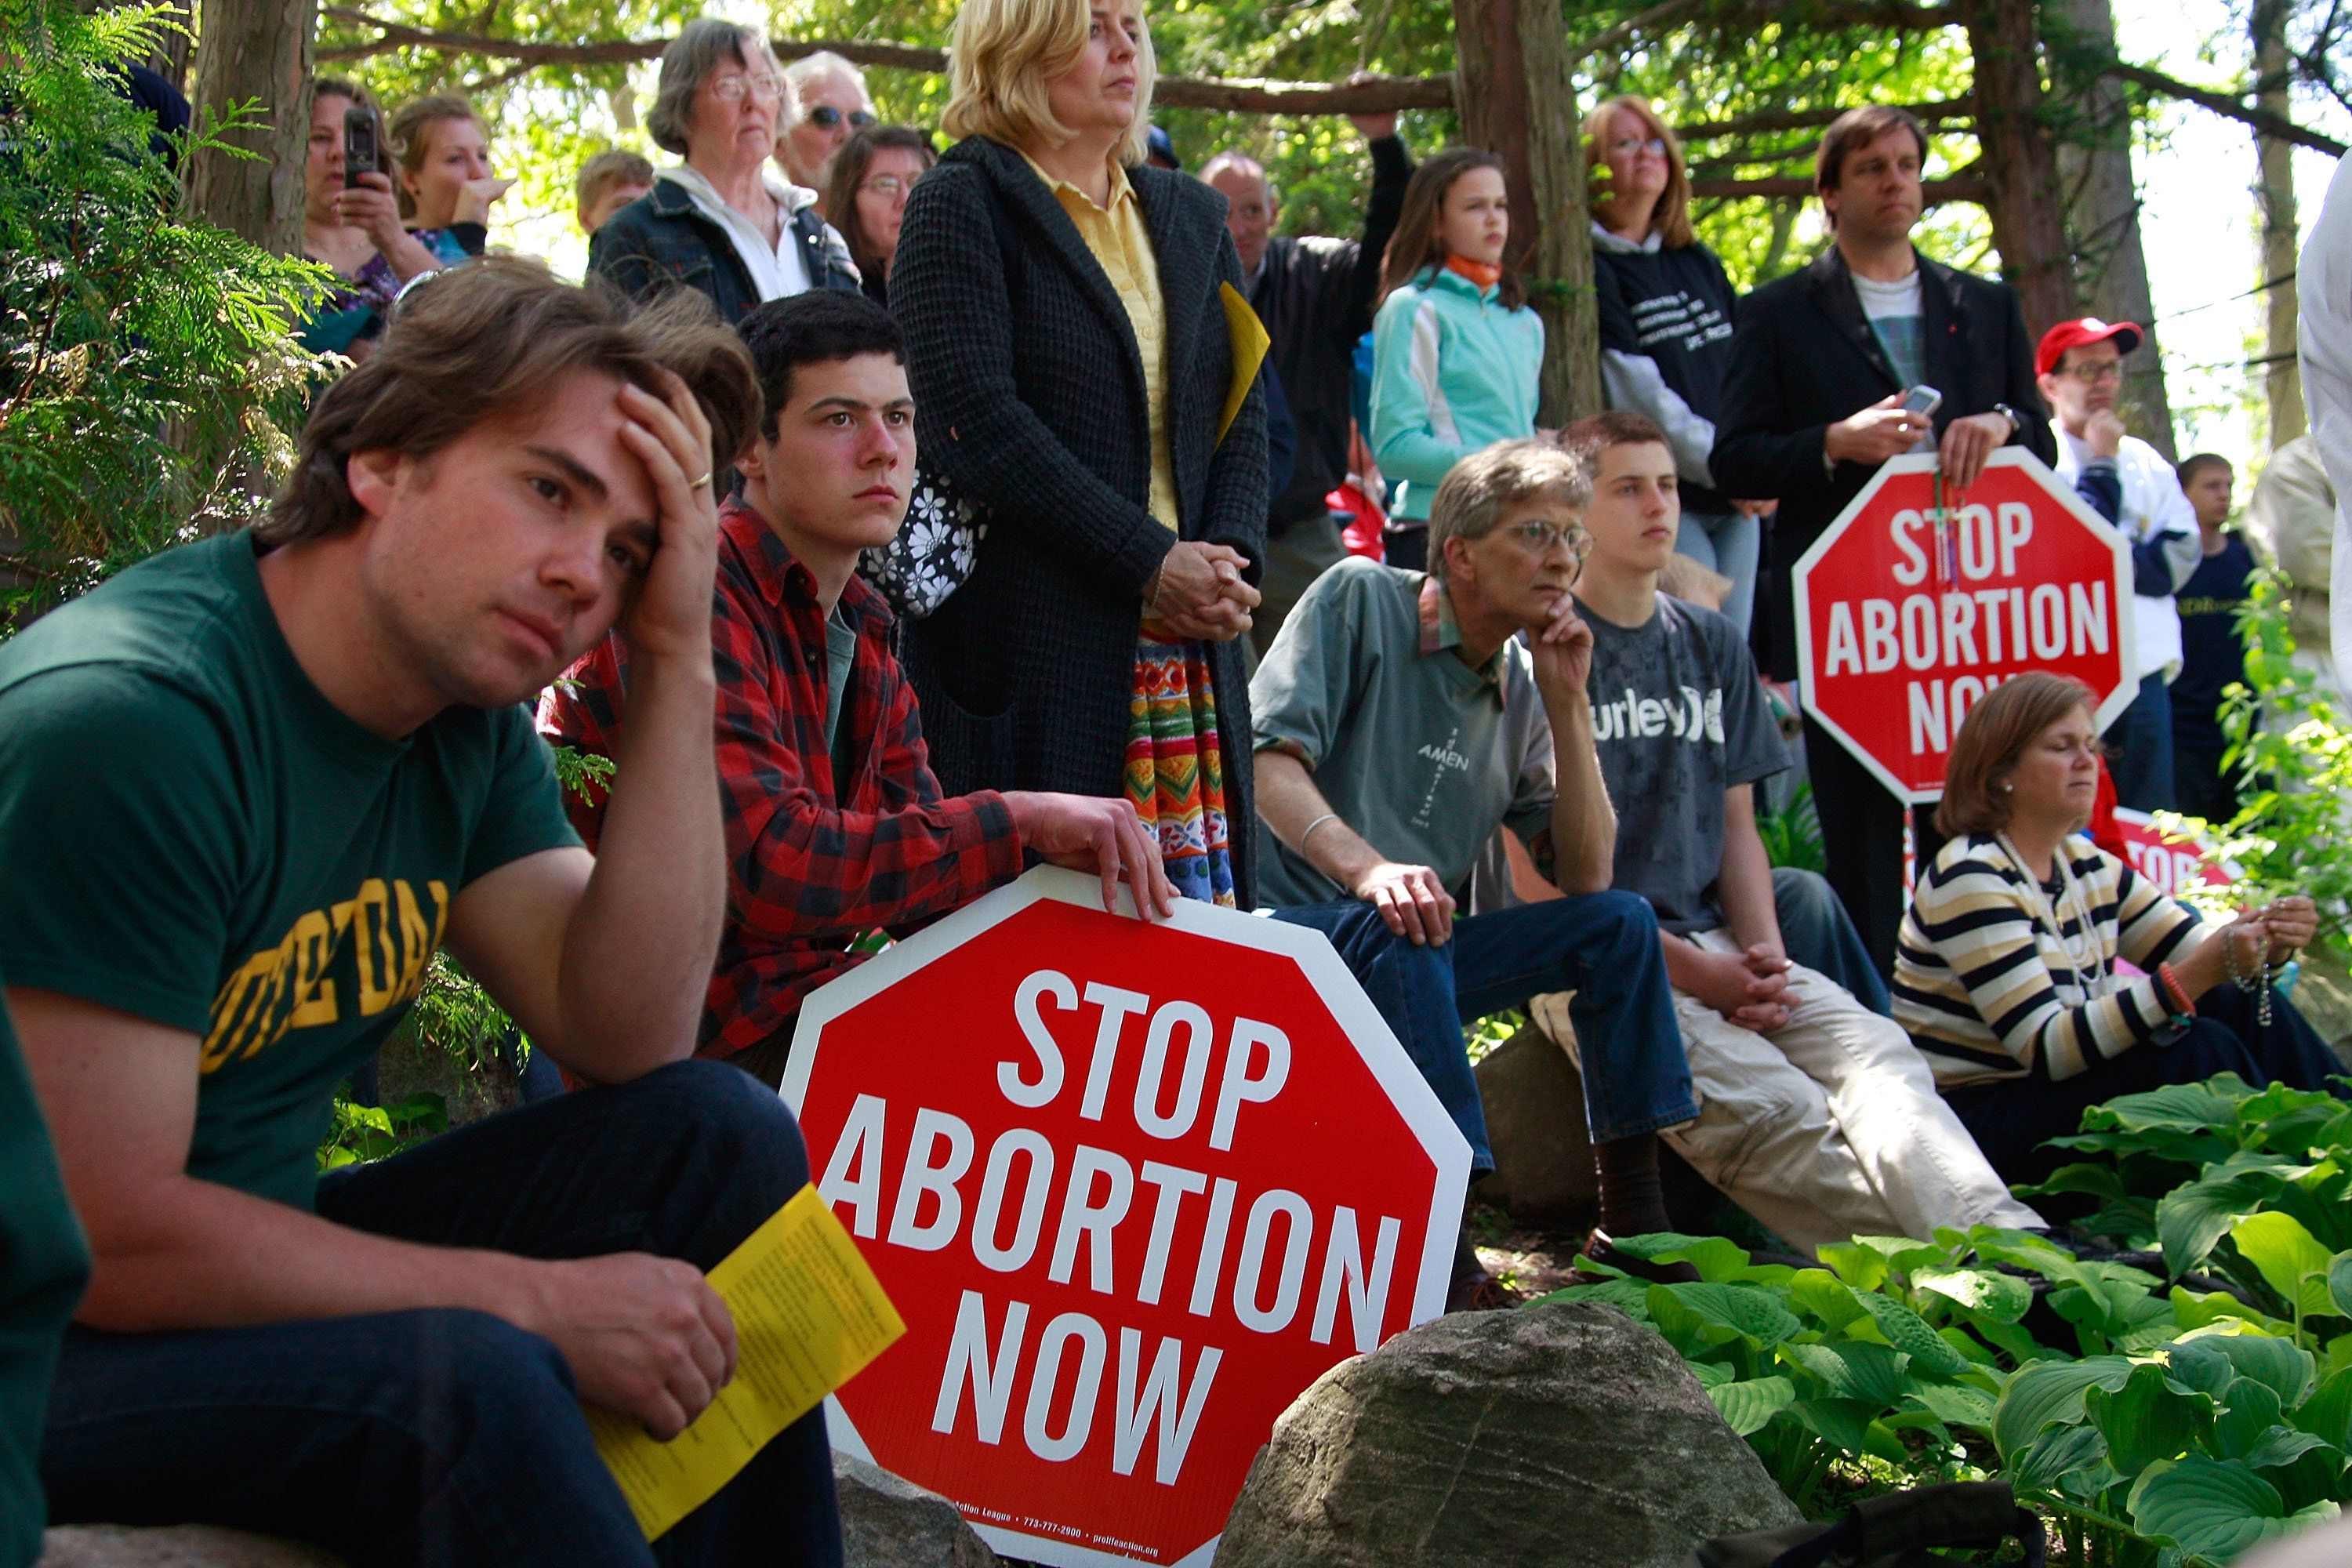 SOUTH BEND, IN - MAY 17: Pro-life activists look on as Notre Dame University students hold an alternative commencement cermony held to protest President Barack Obama's visit to the Grotto of Our Lady of Lourdes on the campus of Notre Dame University May 17, 2009 in South Bend, Indiana. Students chose to skip the commencement after the school decided to invite President Obama, who supports abortion rights, to deliver the commencement address and award him an honorary degree. (Photo by Scott Olson/Getty Images)